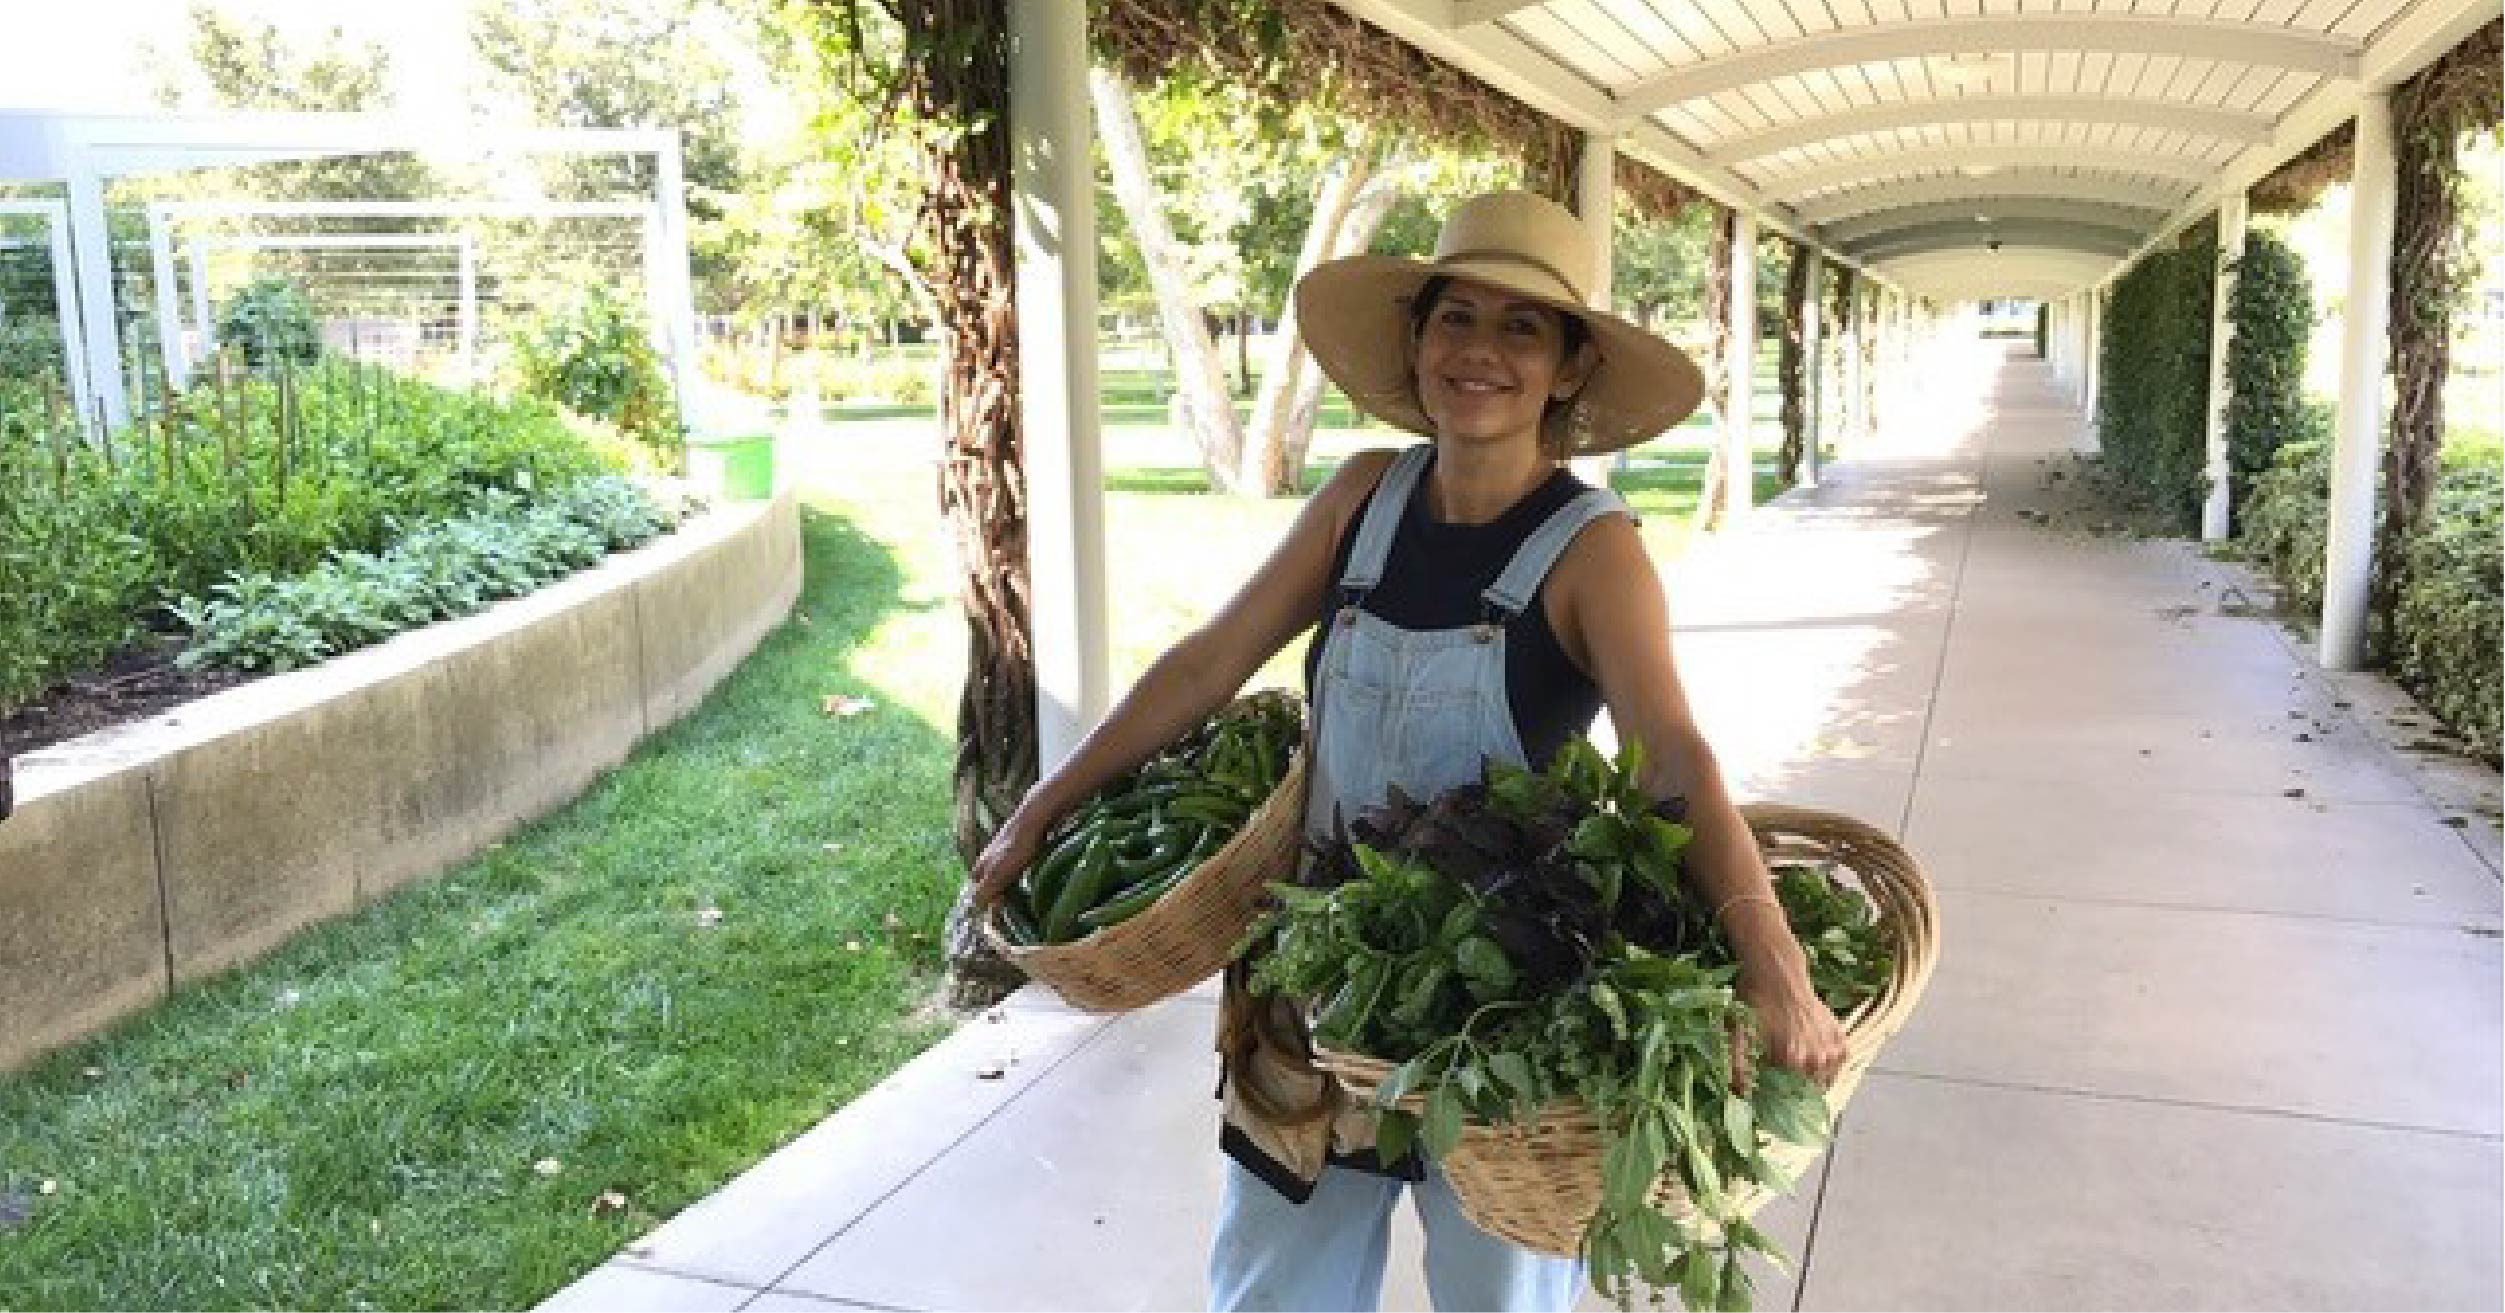 Emy Terusa of Tenfold Harvest poses with a bounty of produce grown in Capital Group's on-site garden in Irvine, CA. A close relationship between Capital Group, Tenfold Harvest, and Bon Appétit brings hyperlocal produce to the menus at Capital Group's on-site café throughout the year.